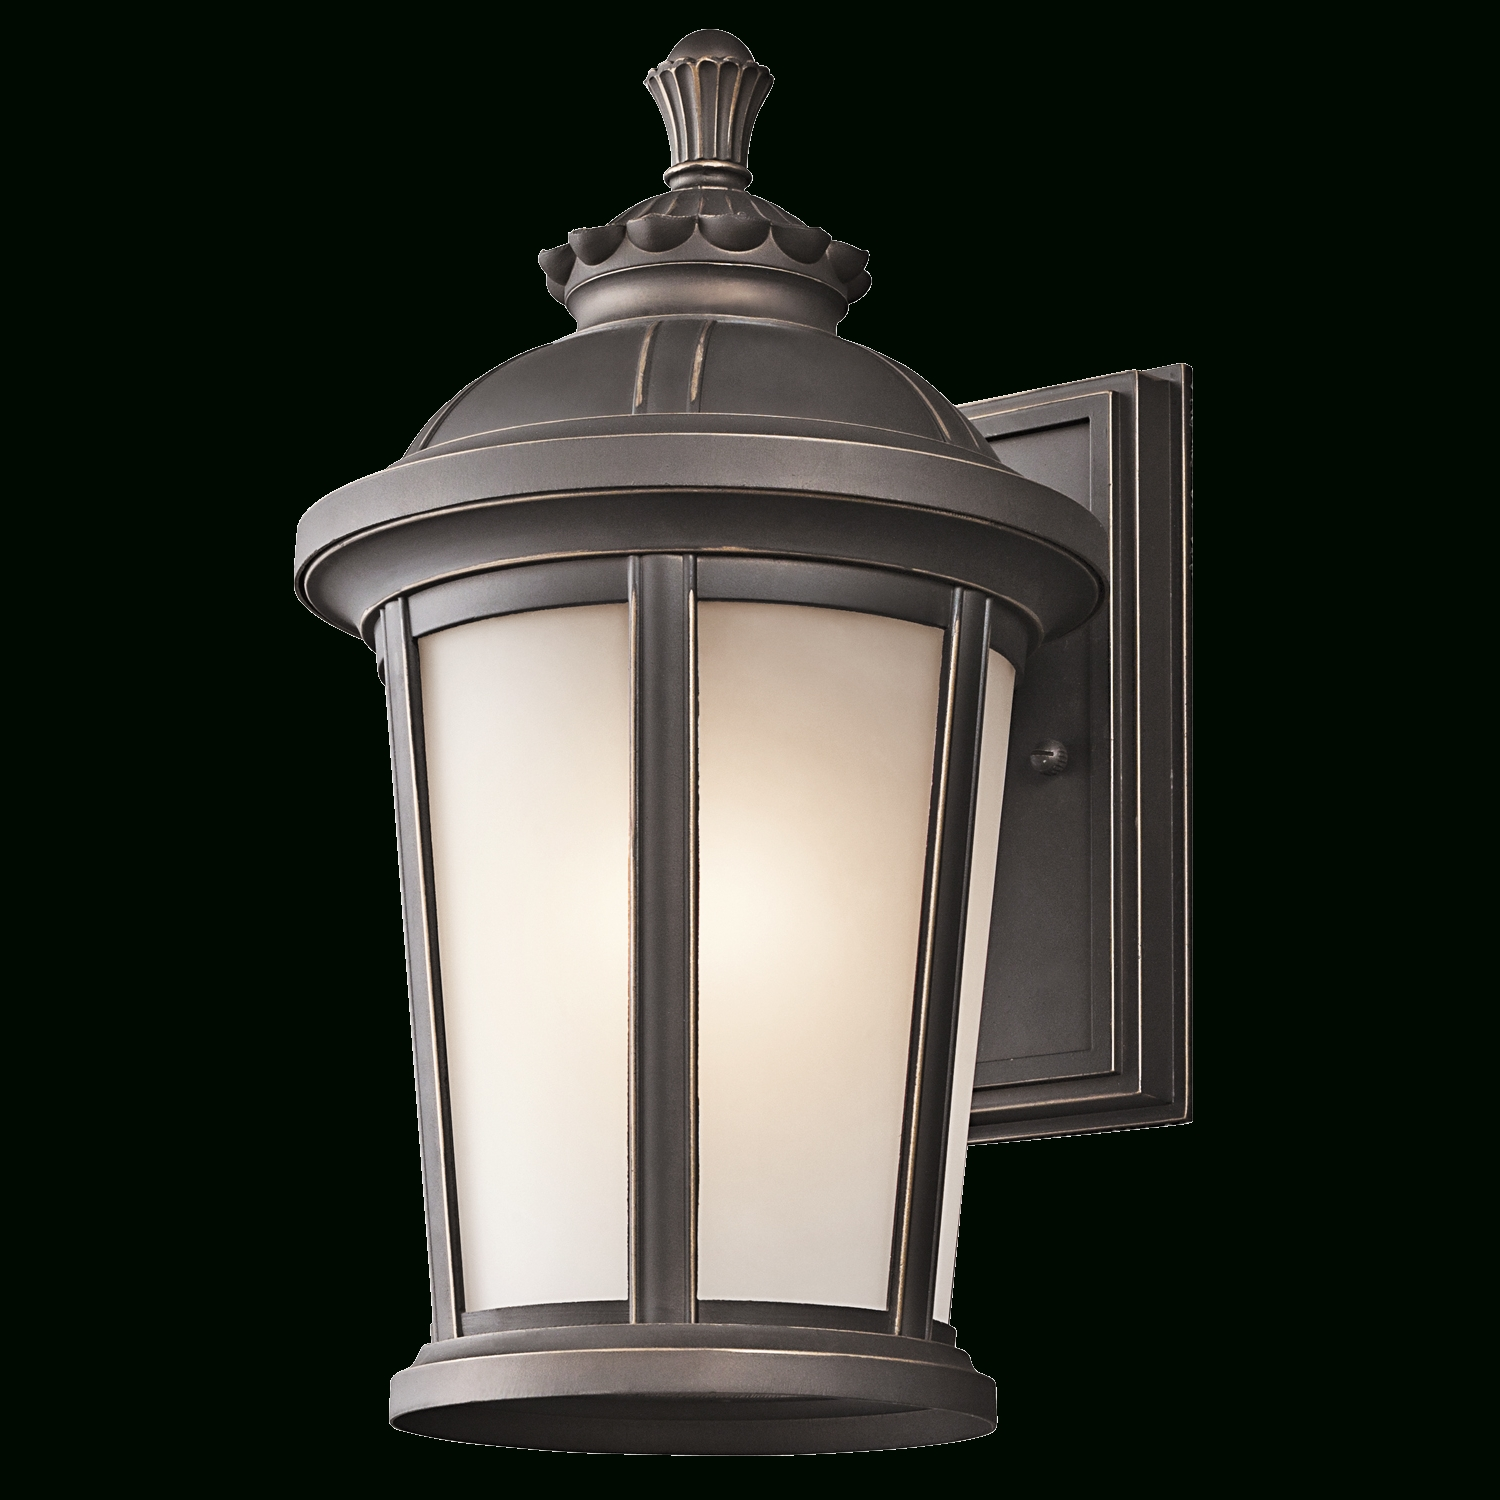 2018 Outdoor Wall Led Kichler Lighting Throughout Ralston Collection 1 Light Outdoor Wall Lamp In Rubbed Bronze (View 18 of 20)